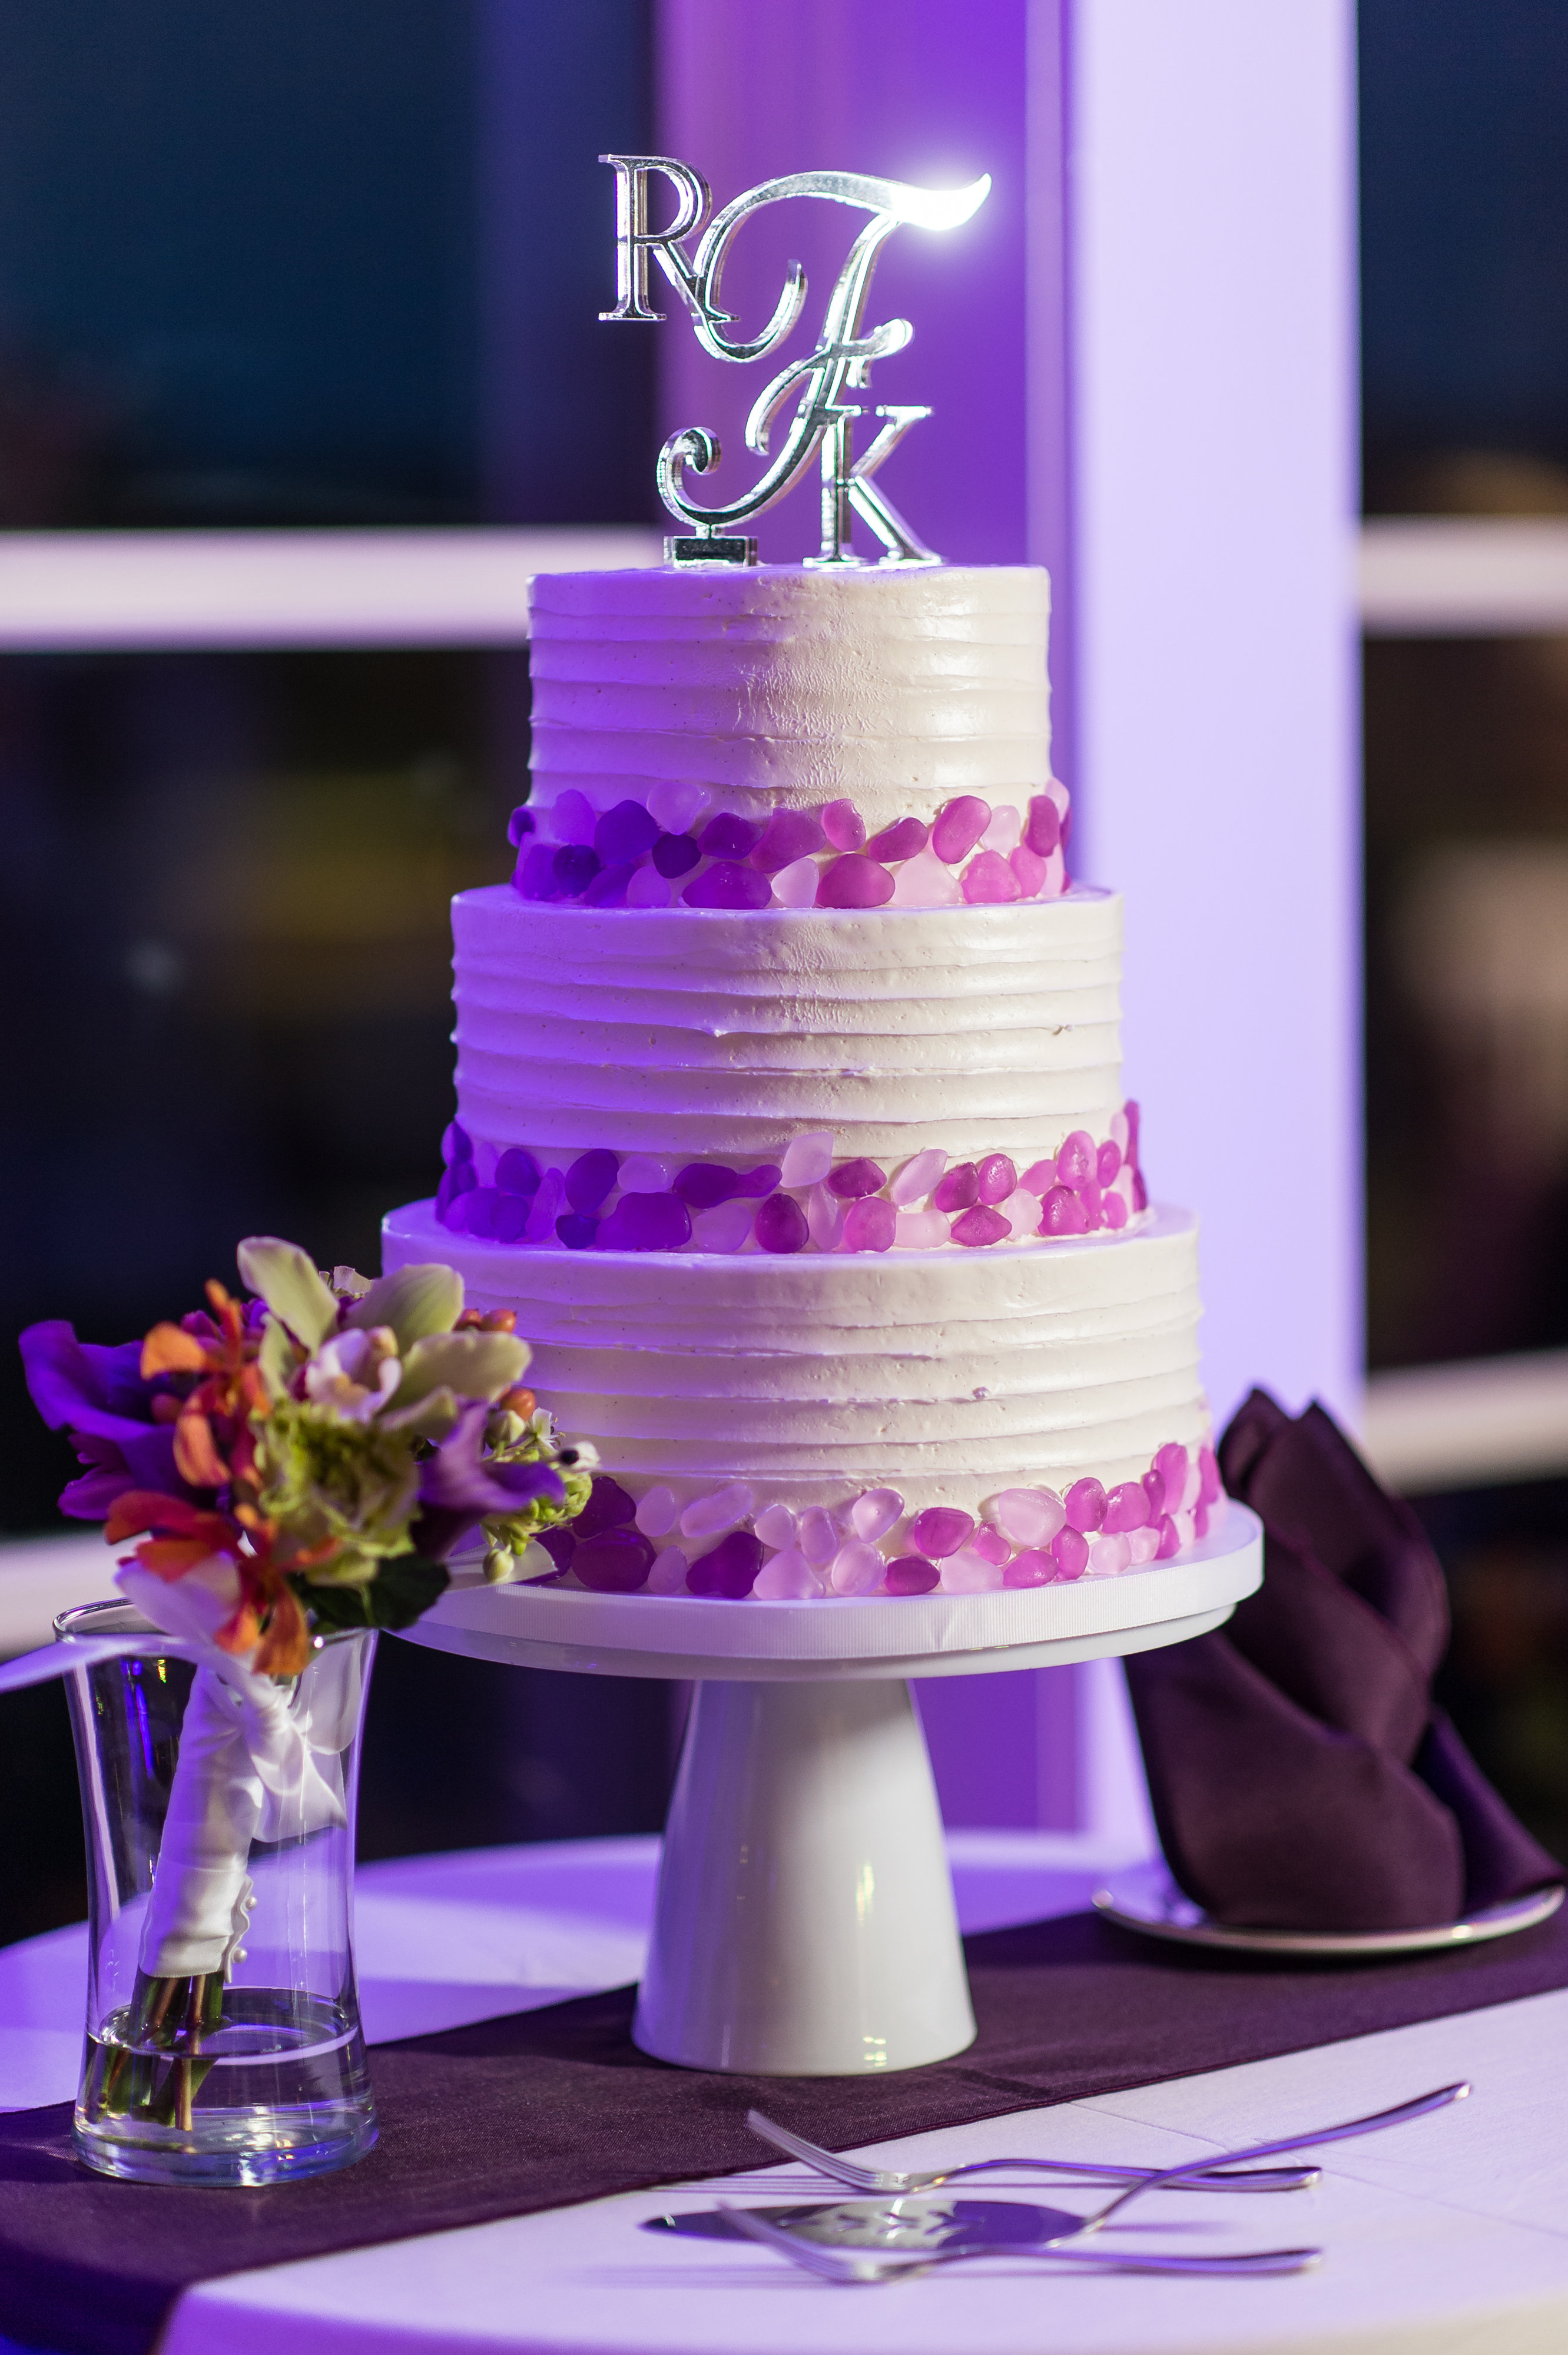 Kylie and Rick's Cake